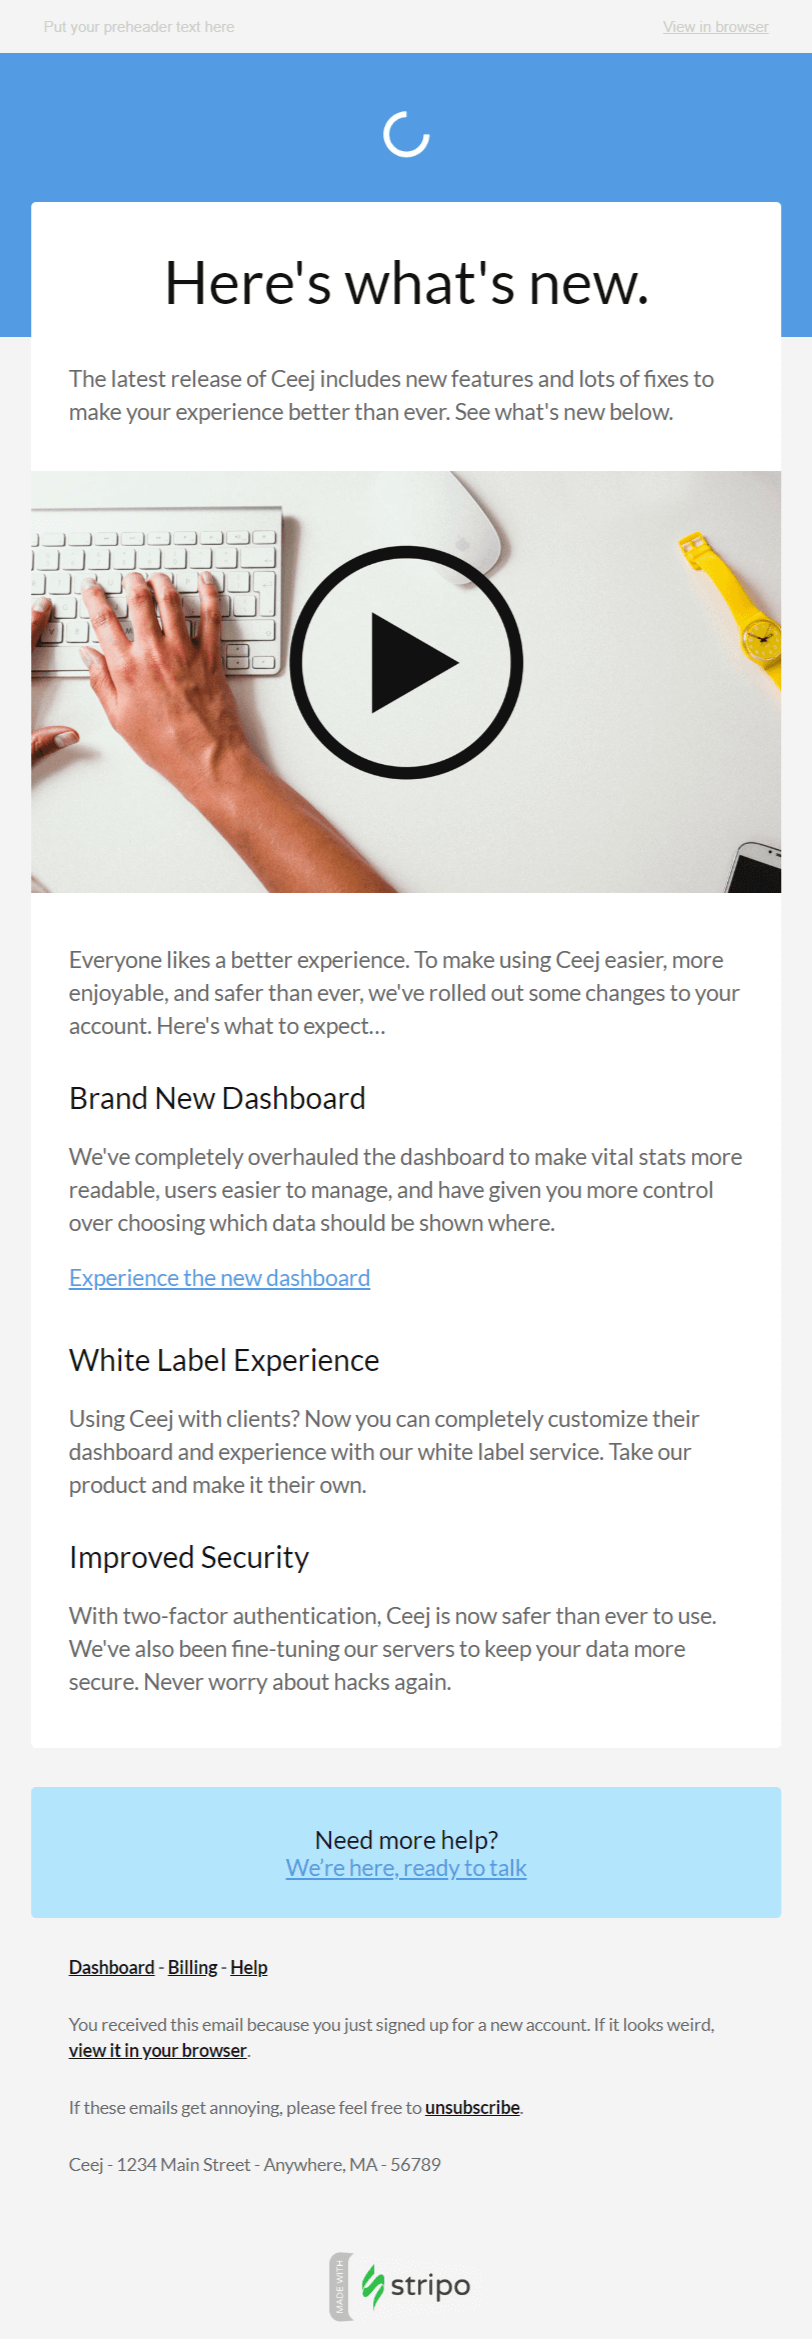 Whether you're ready to announce product launches, events, or new hires, we offer a variety of premade press release pdf templates that are perfect for your company. 20 New Effective Product Launch Announcement Emails Stripo Email